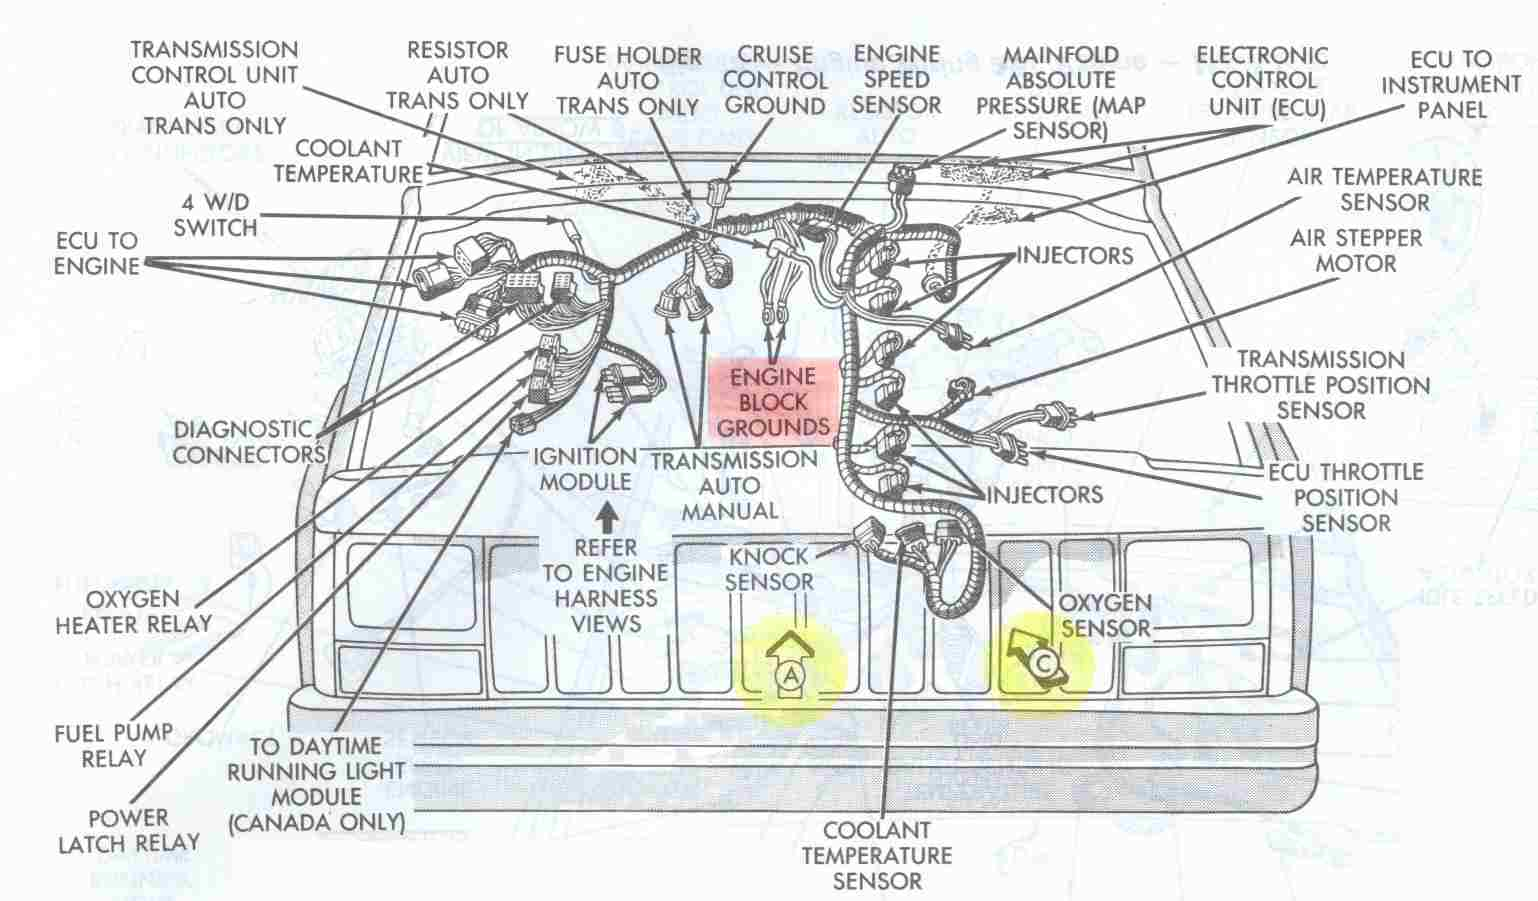 Electrical_Engine_Ground_Points_Overview jeep cherokee electrical diagnosing erratic behavior of engine 1997 jeep grand cherokee wiring harness at mifinder.co